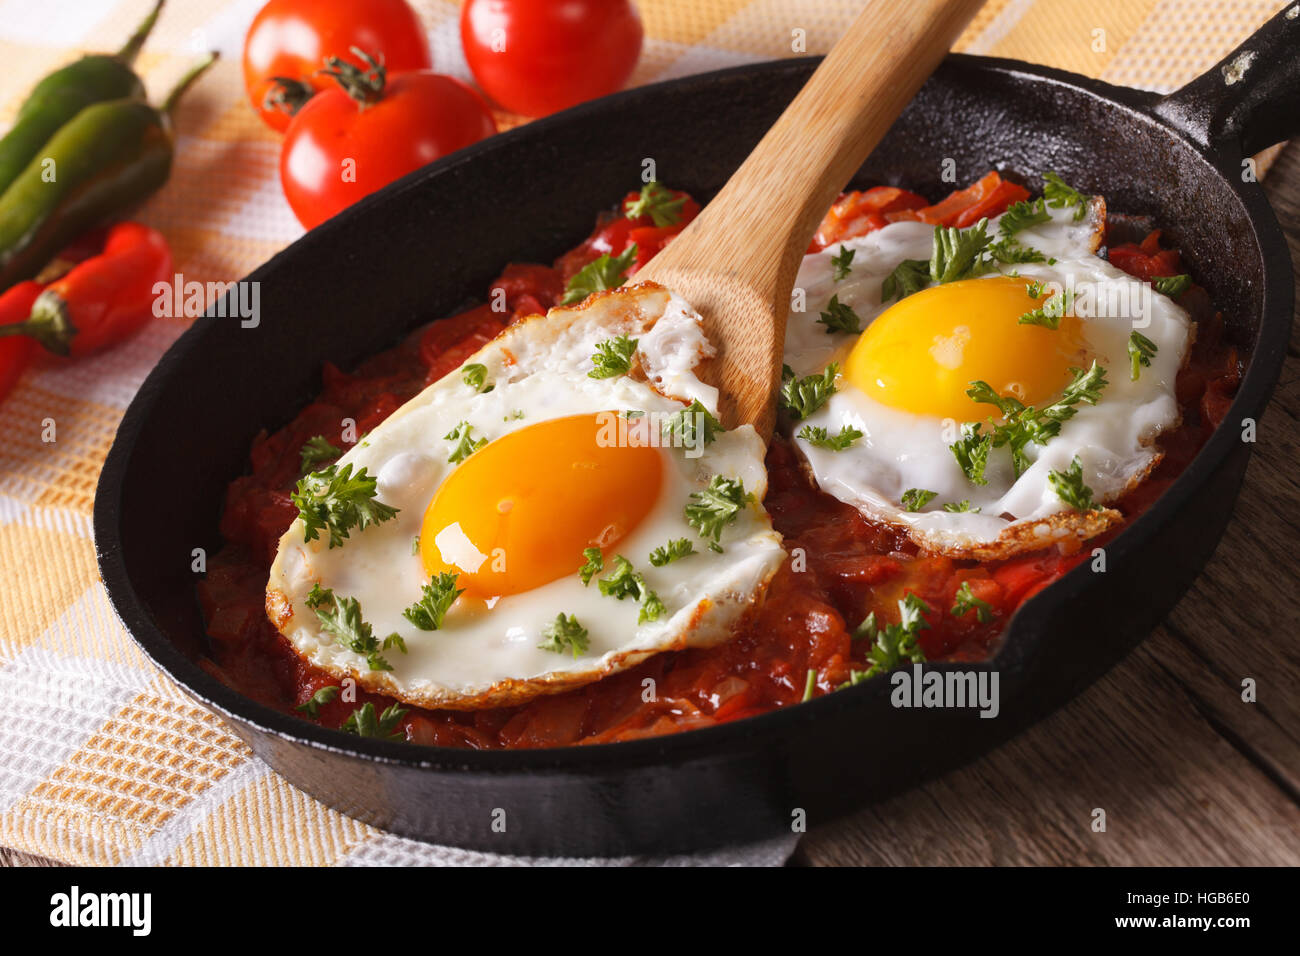 Mexican breakfast huevos rancheros: fried egg with salsa closeup in the pan. Horizontal - Stock Image